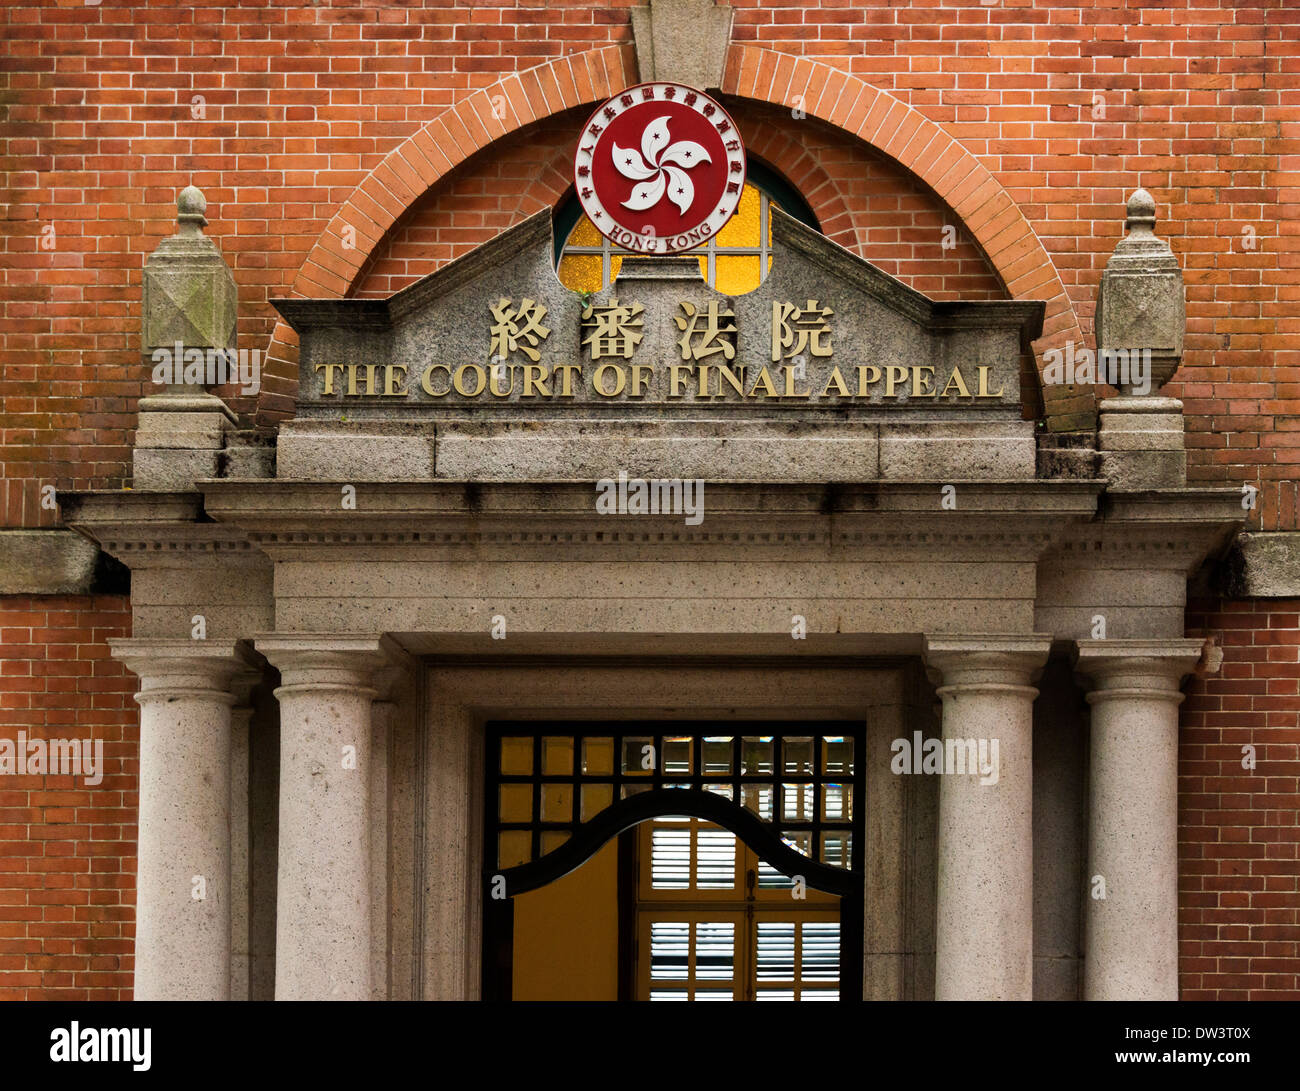 The Court of Final Appeal, Hong Kong - Stock Image